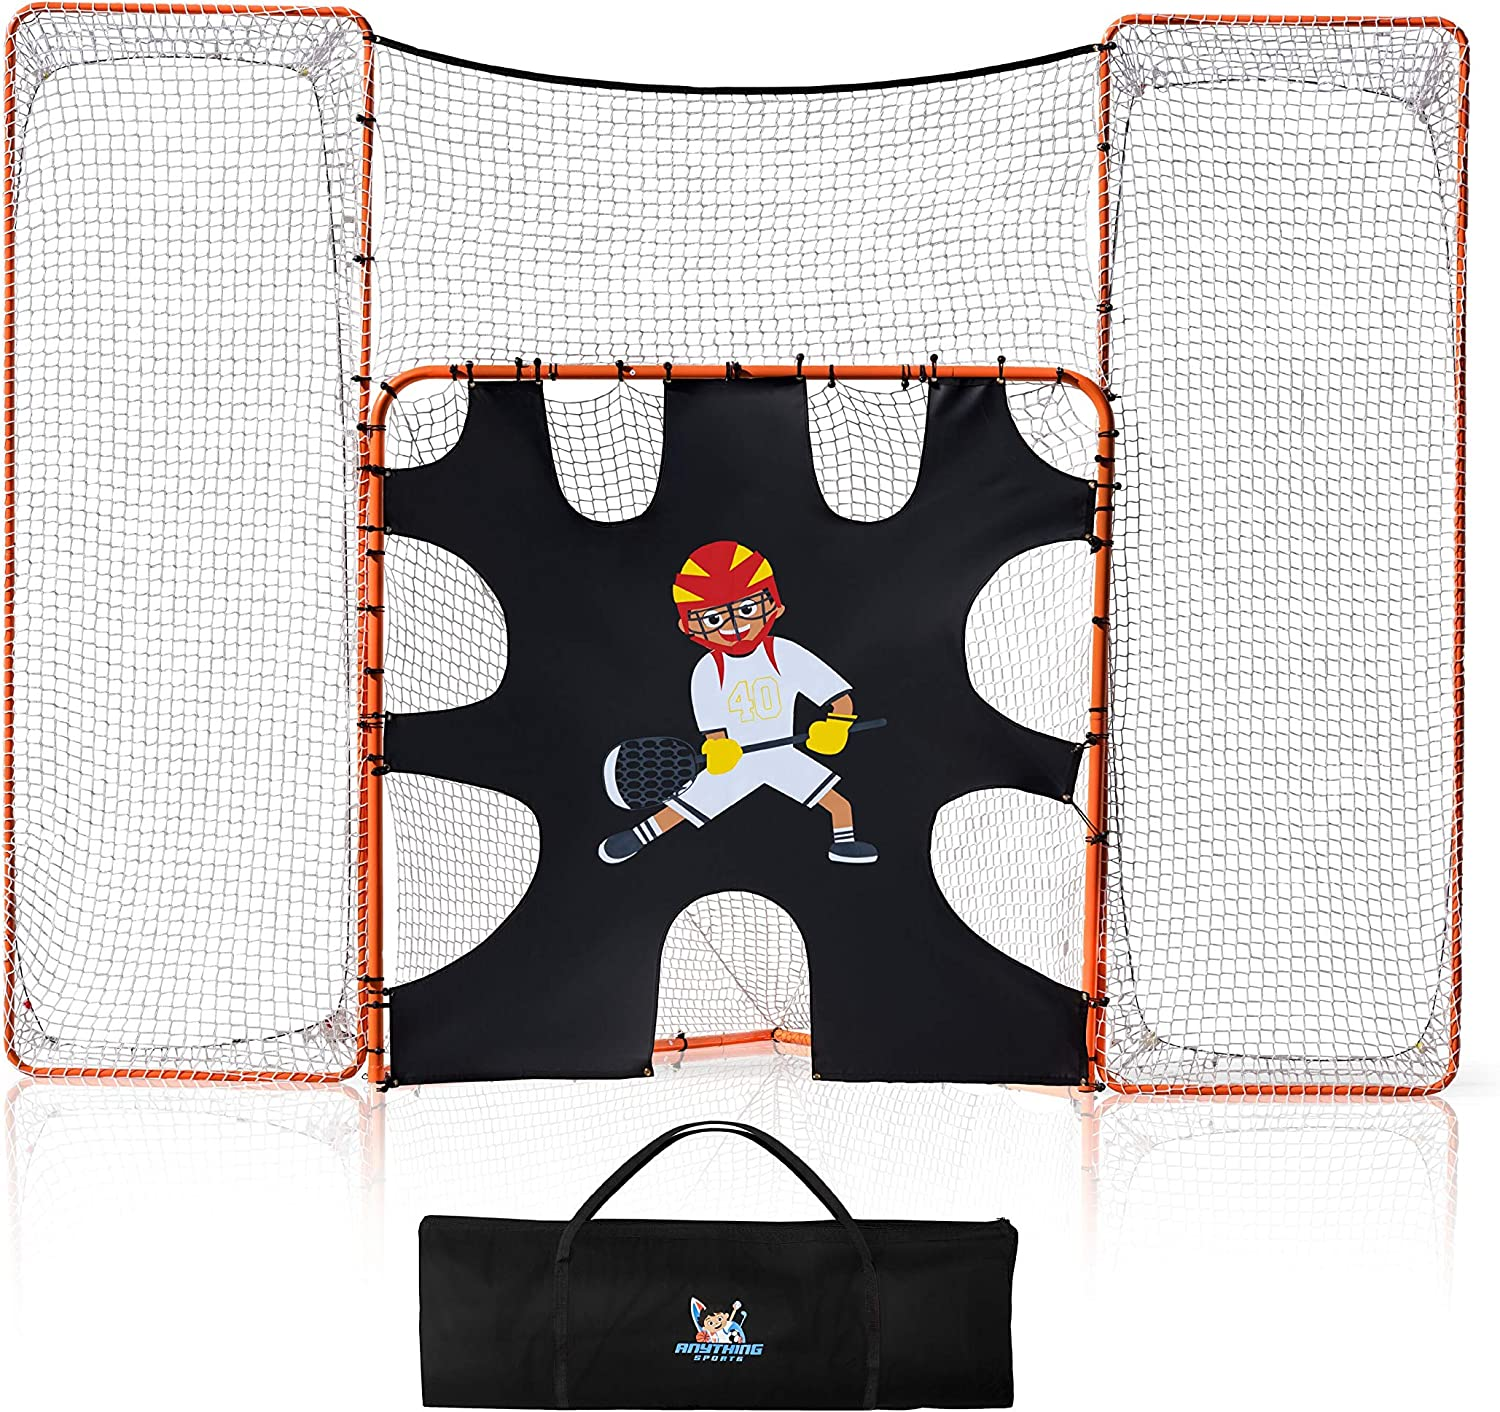 Lacrosse Popular products Scoop 3 in Excellence 1 with Goal Target Backstop and